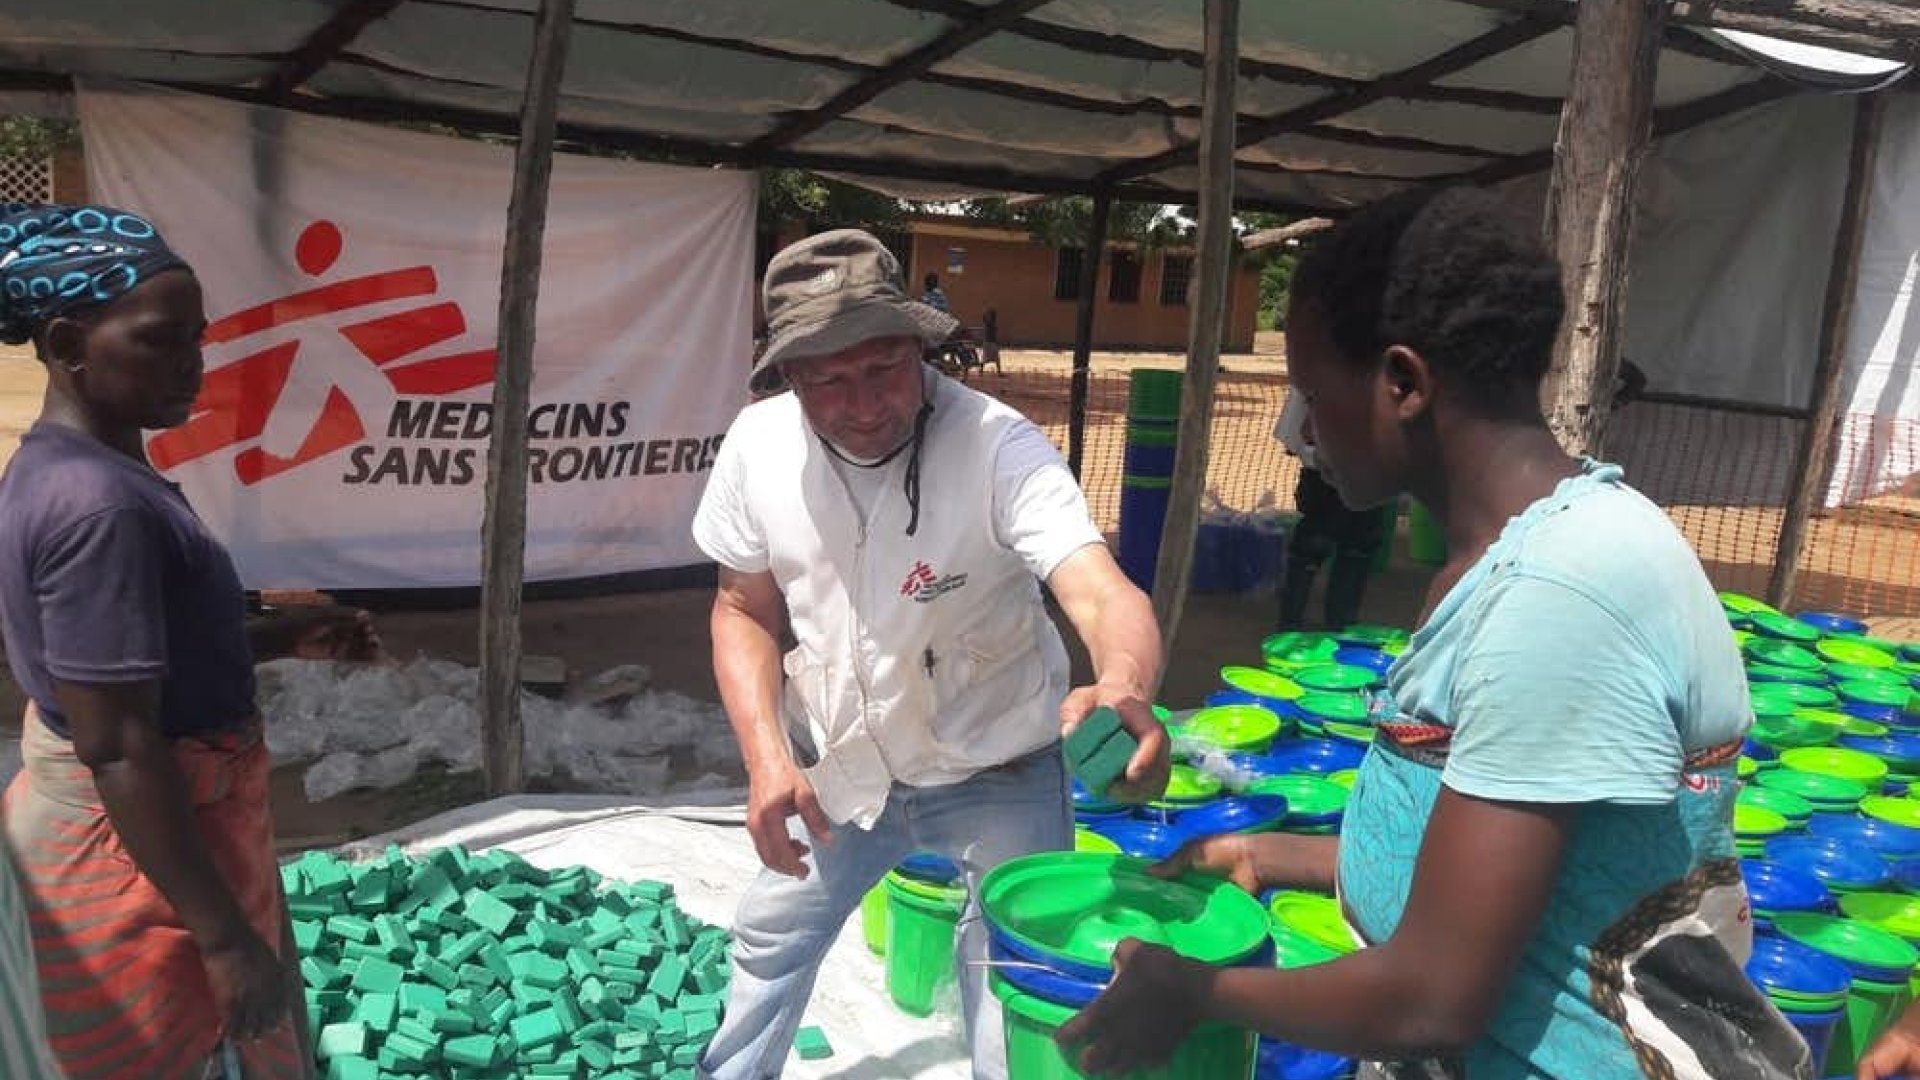 MSF staff handing out water and sanitation supplies in Malawi